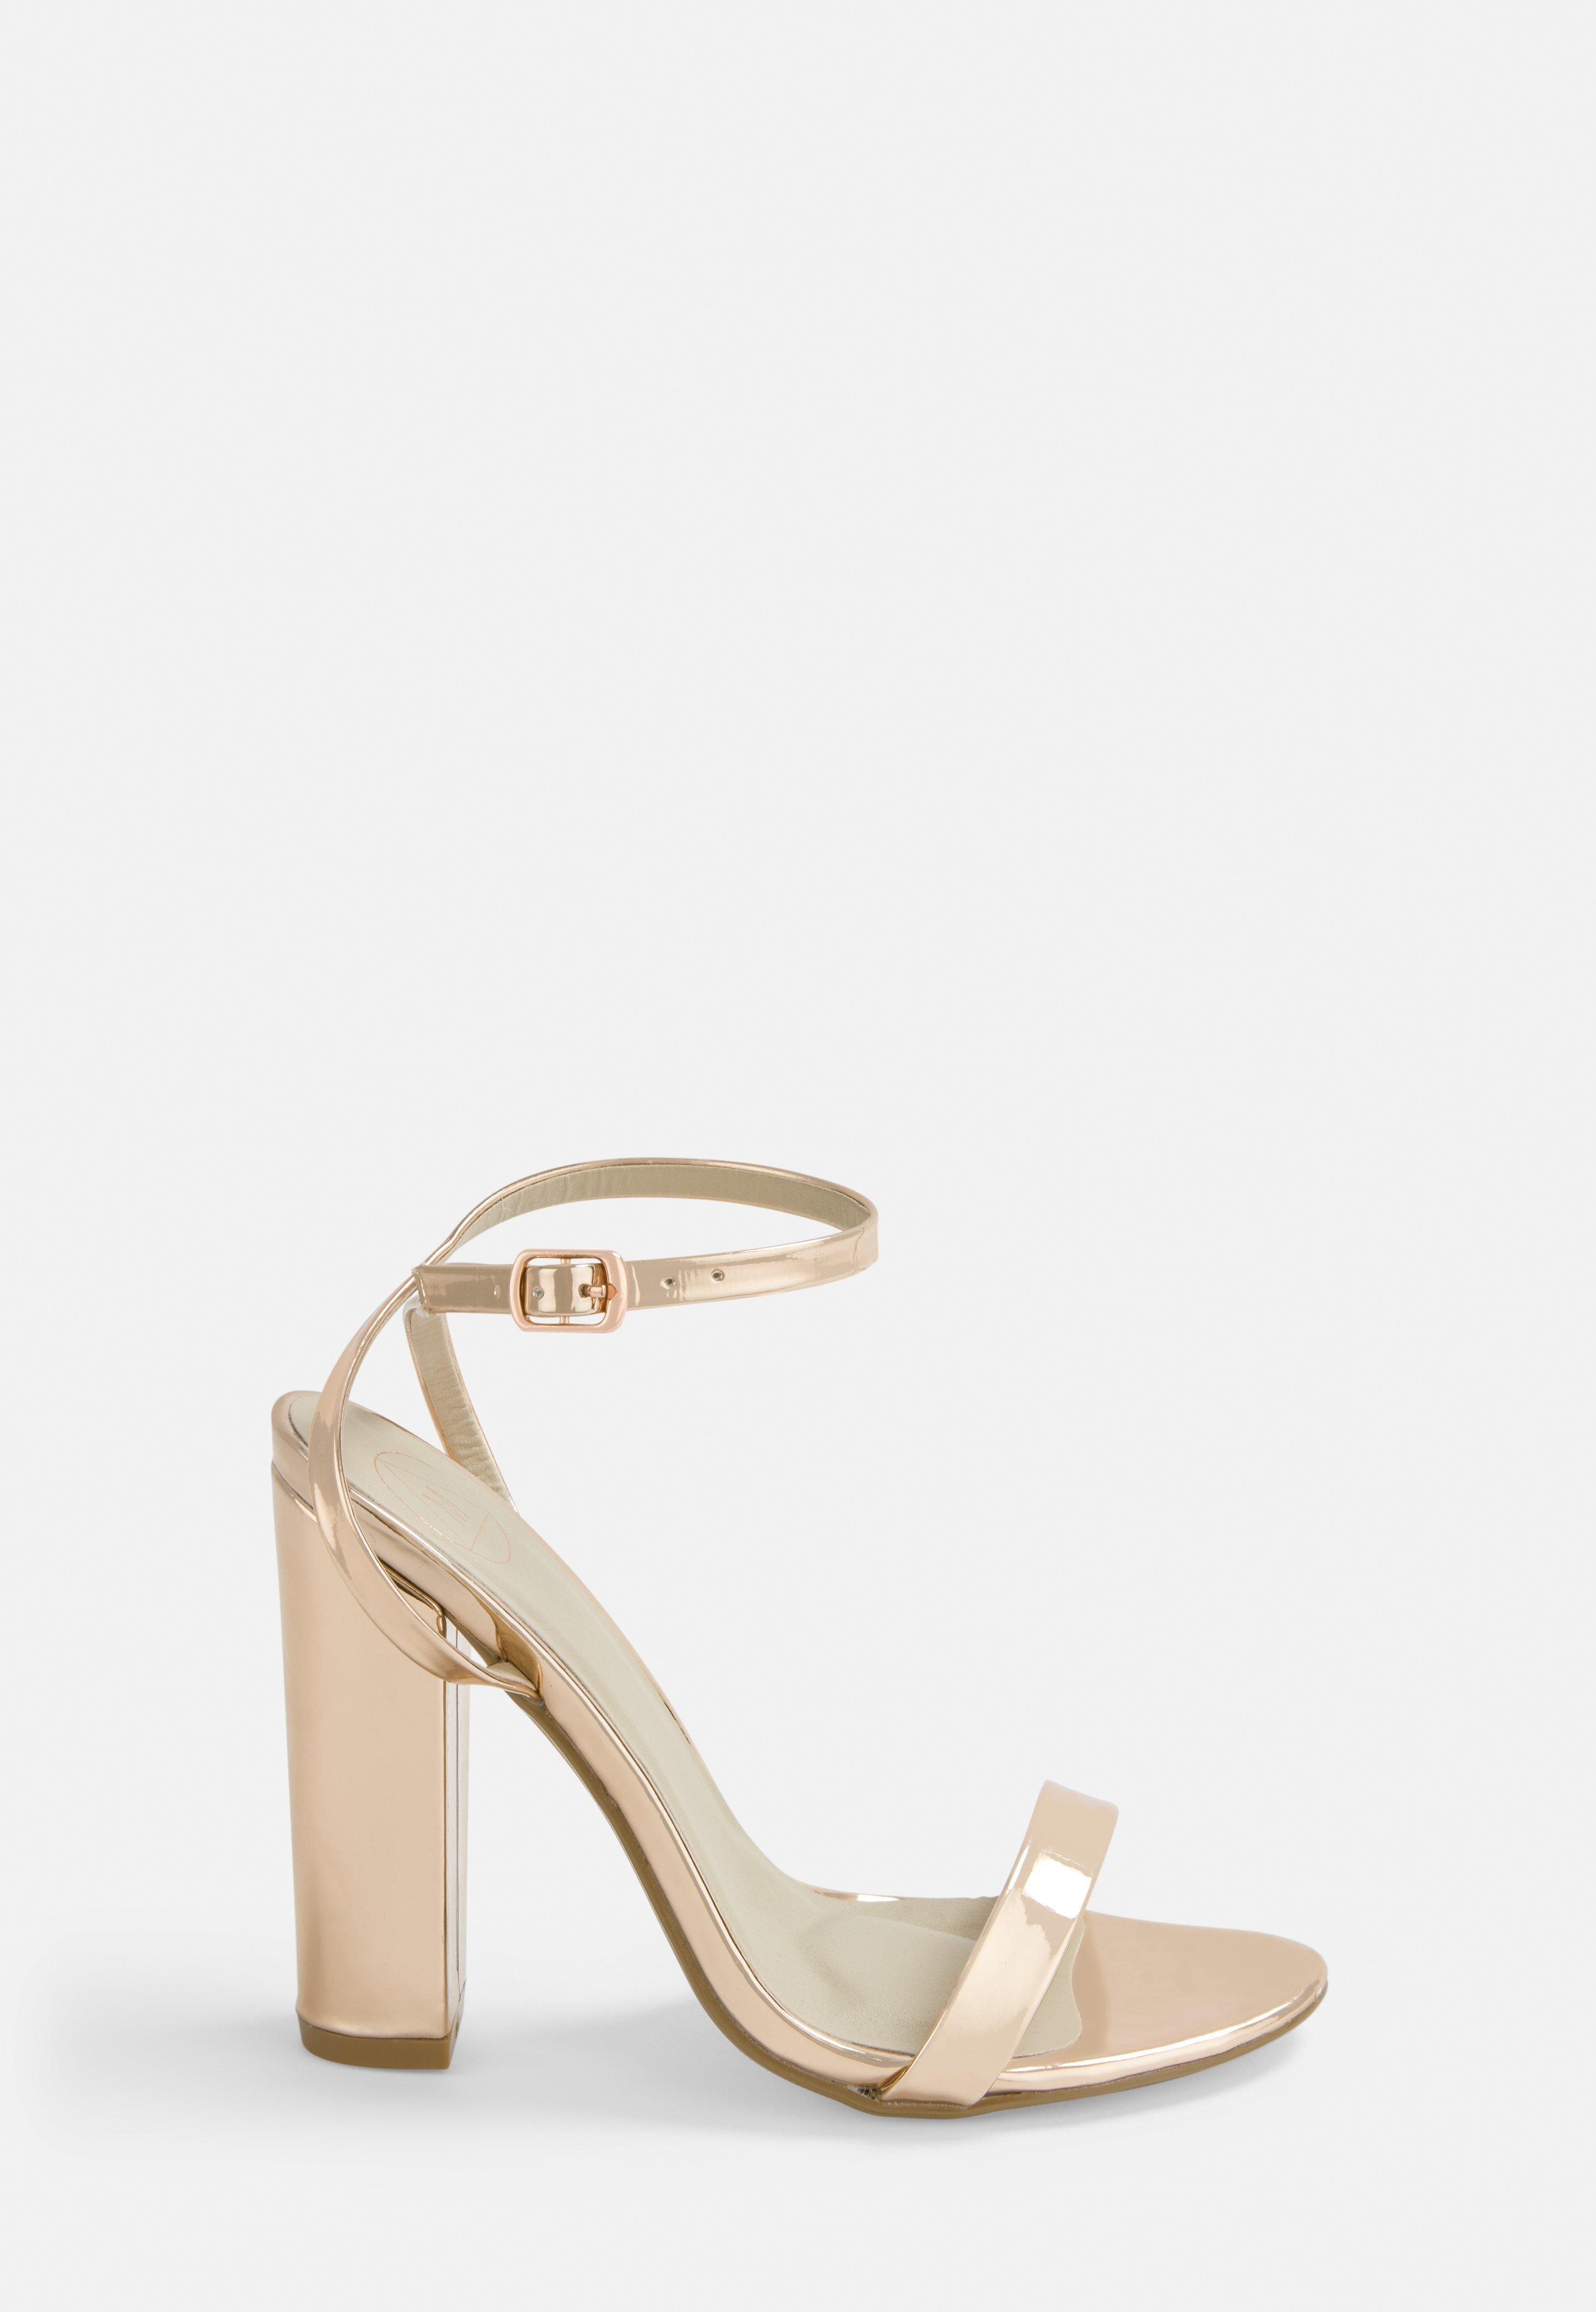 In Sandalen Mit Heel Rosé Gold Blockabsatz High jLq35A4R